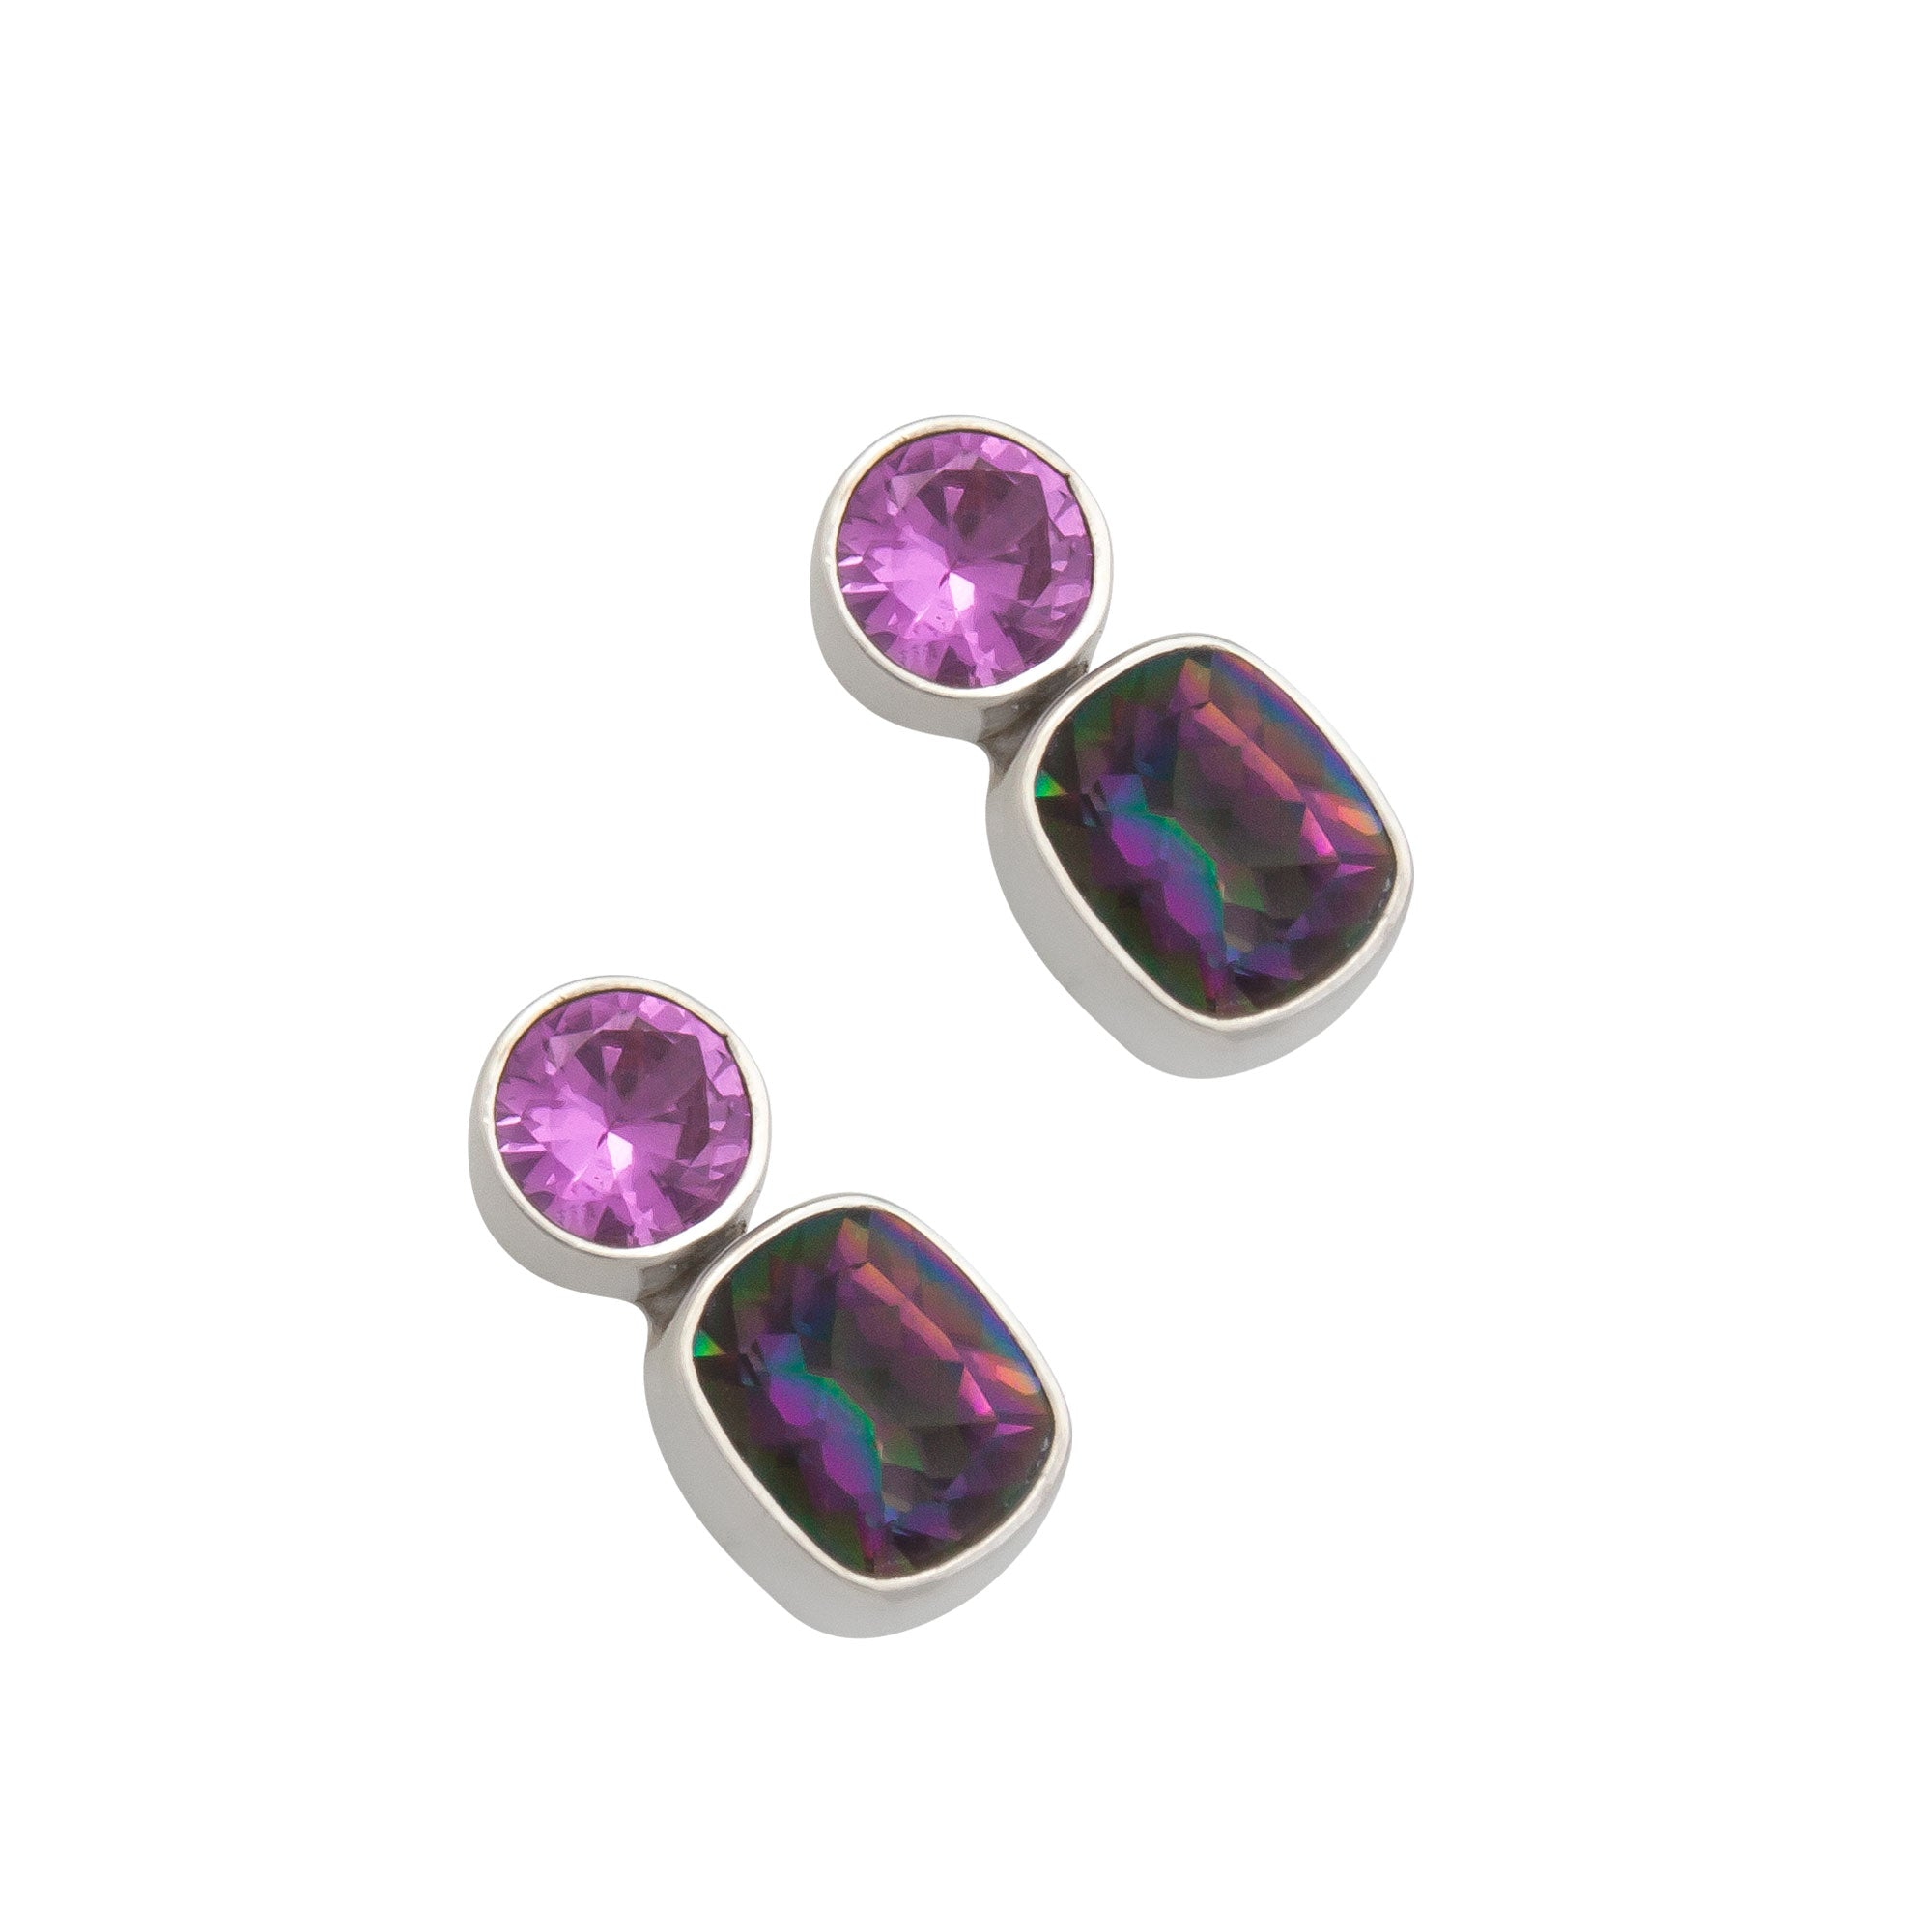 Sterling Silver Lab Pink Sapphire and Rainbow Mystic Quartz Post Earrings | Charles Albert Jewelry